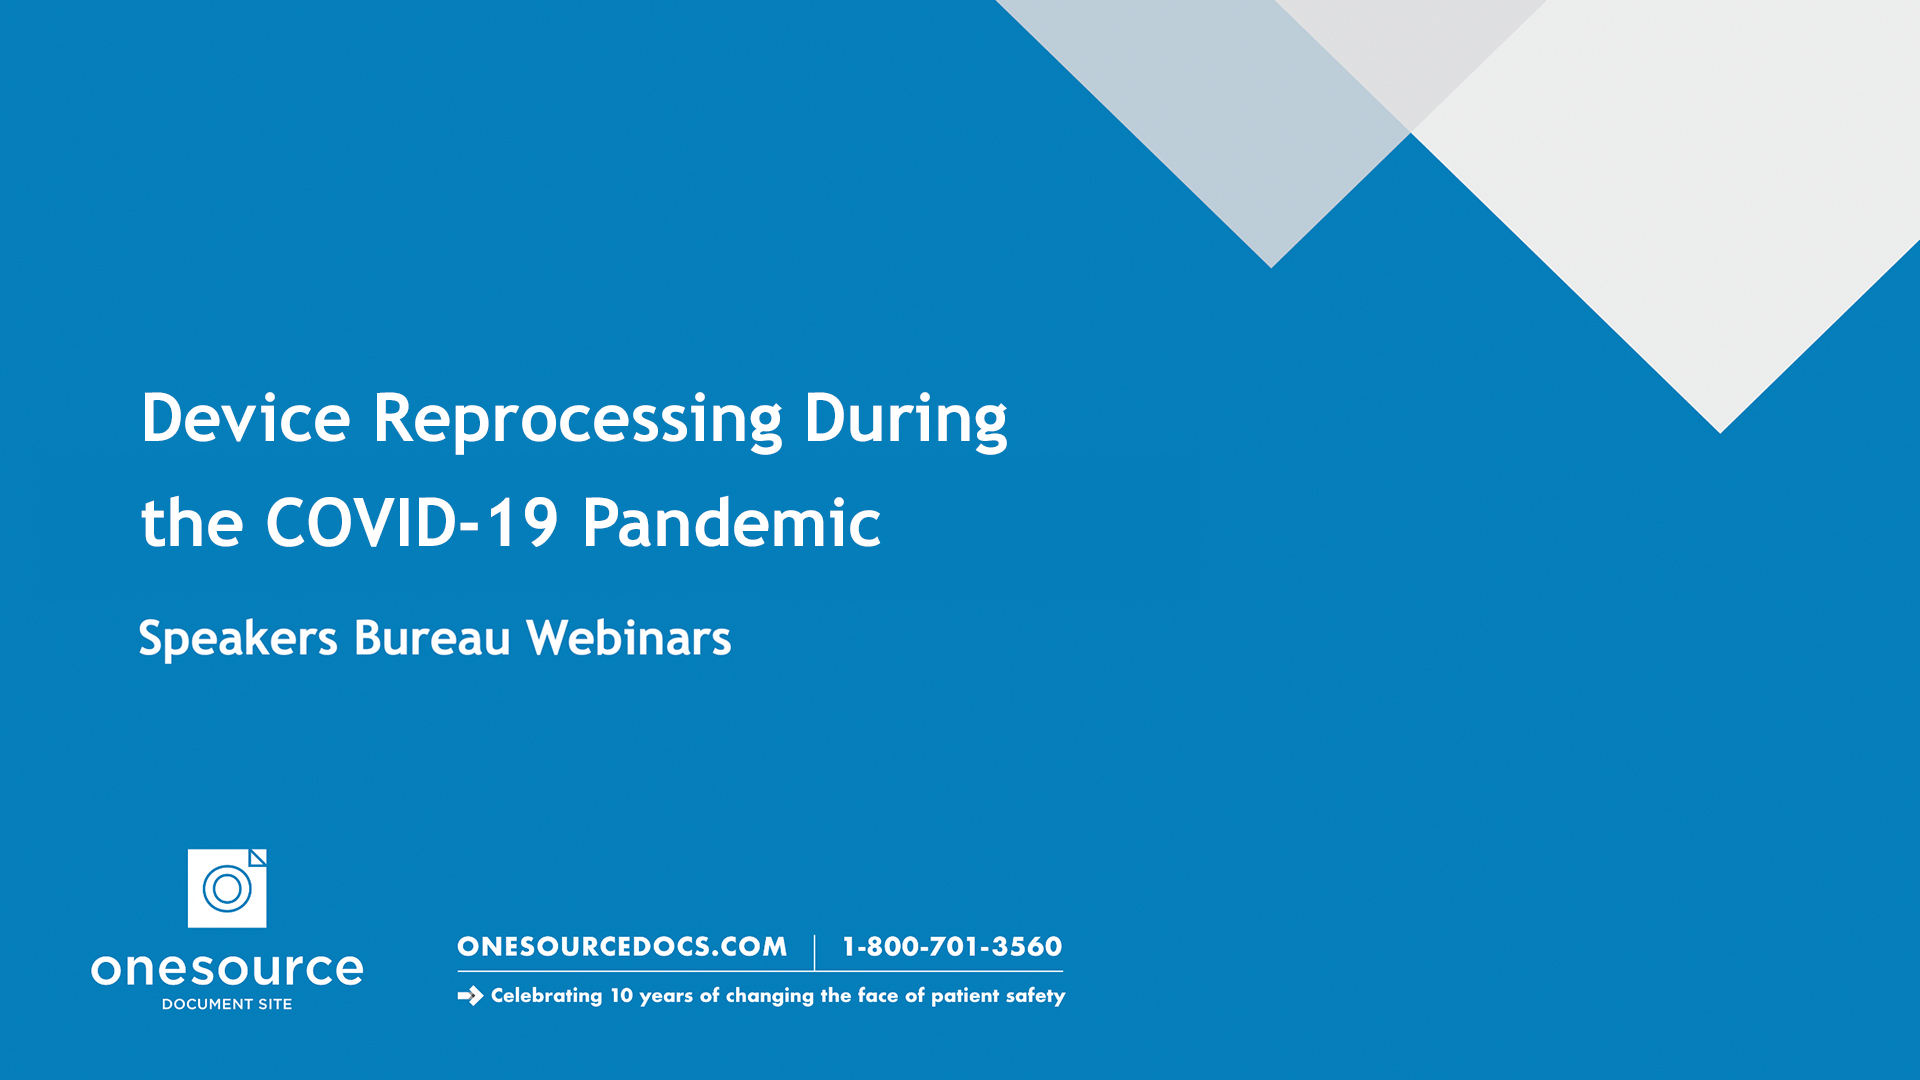 Device Reprocessing During the COVID-19 pandemic